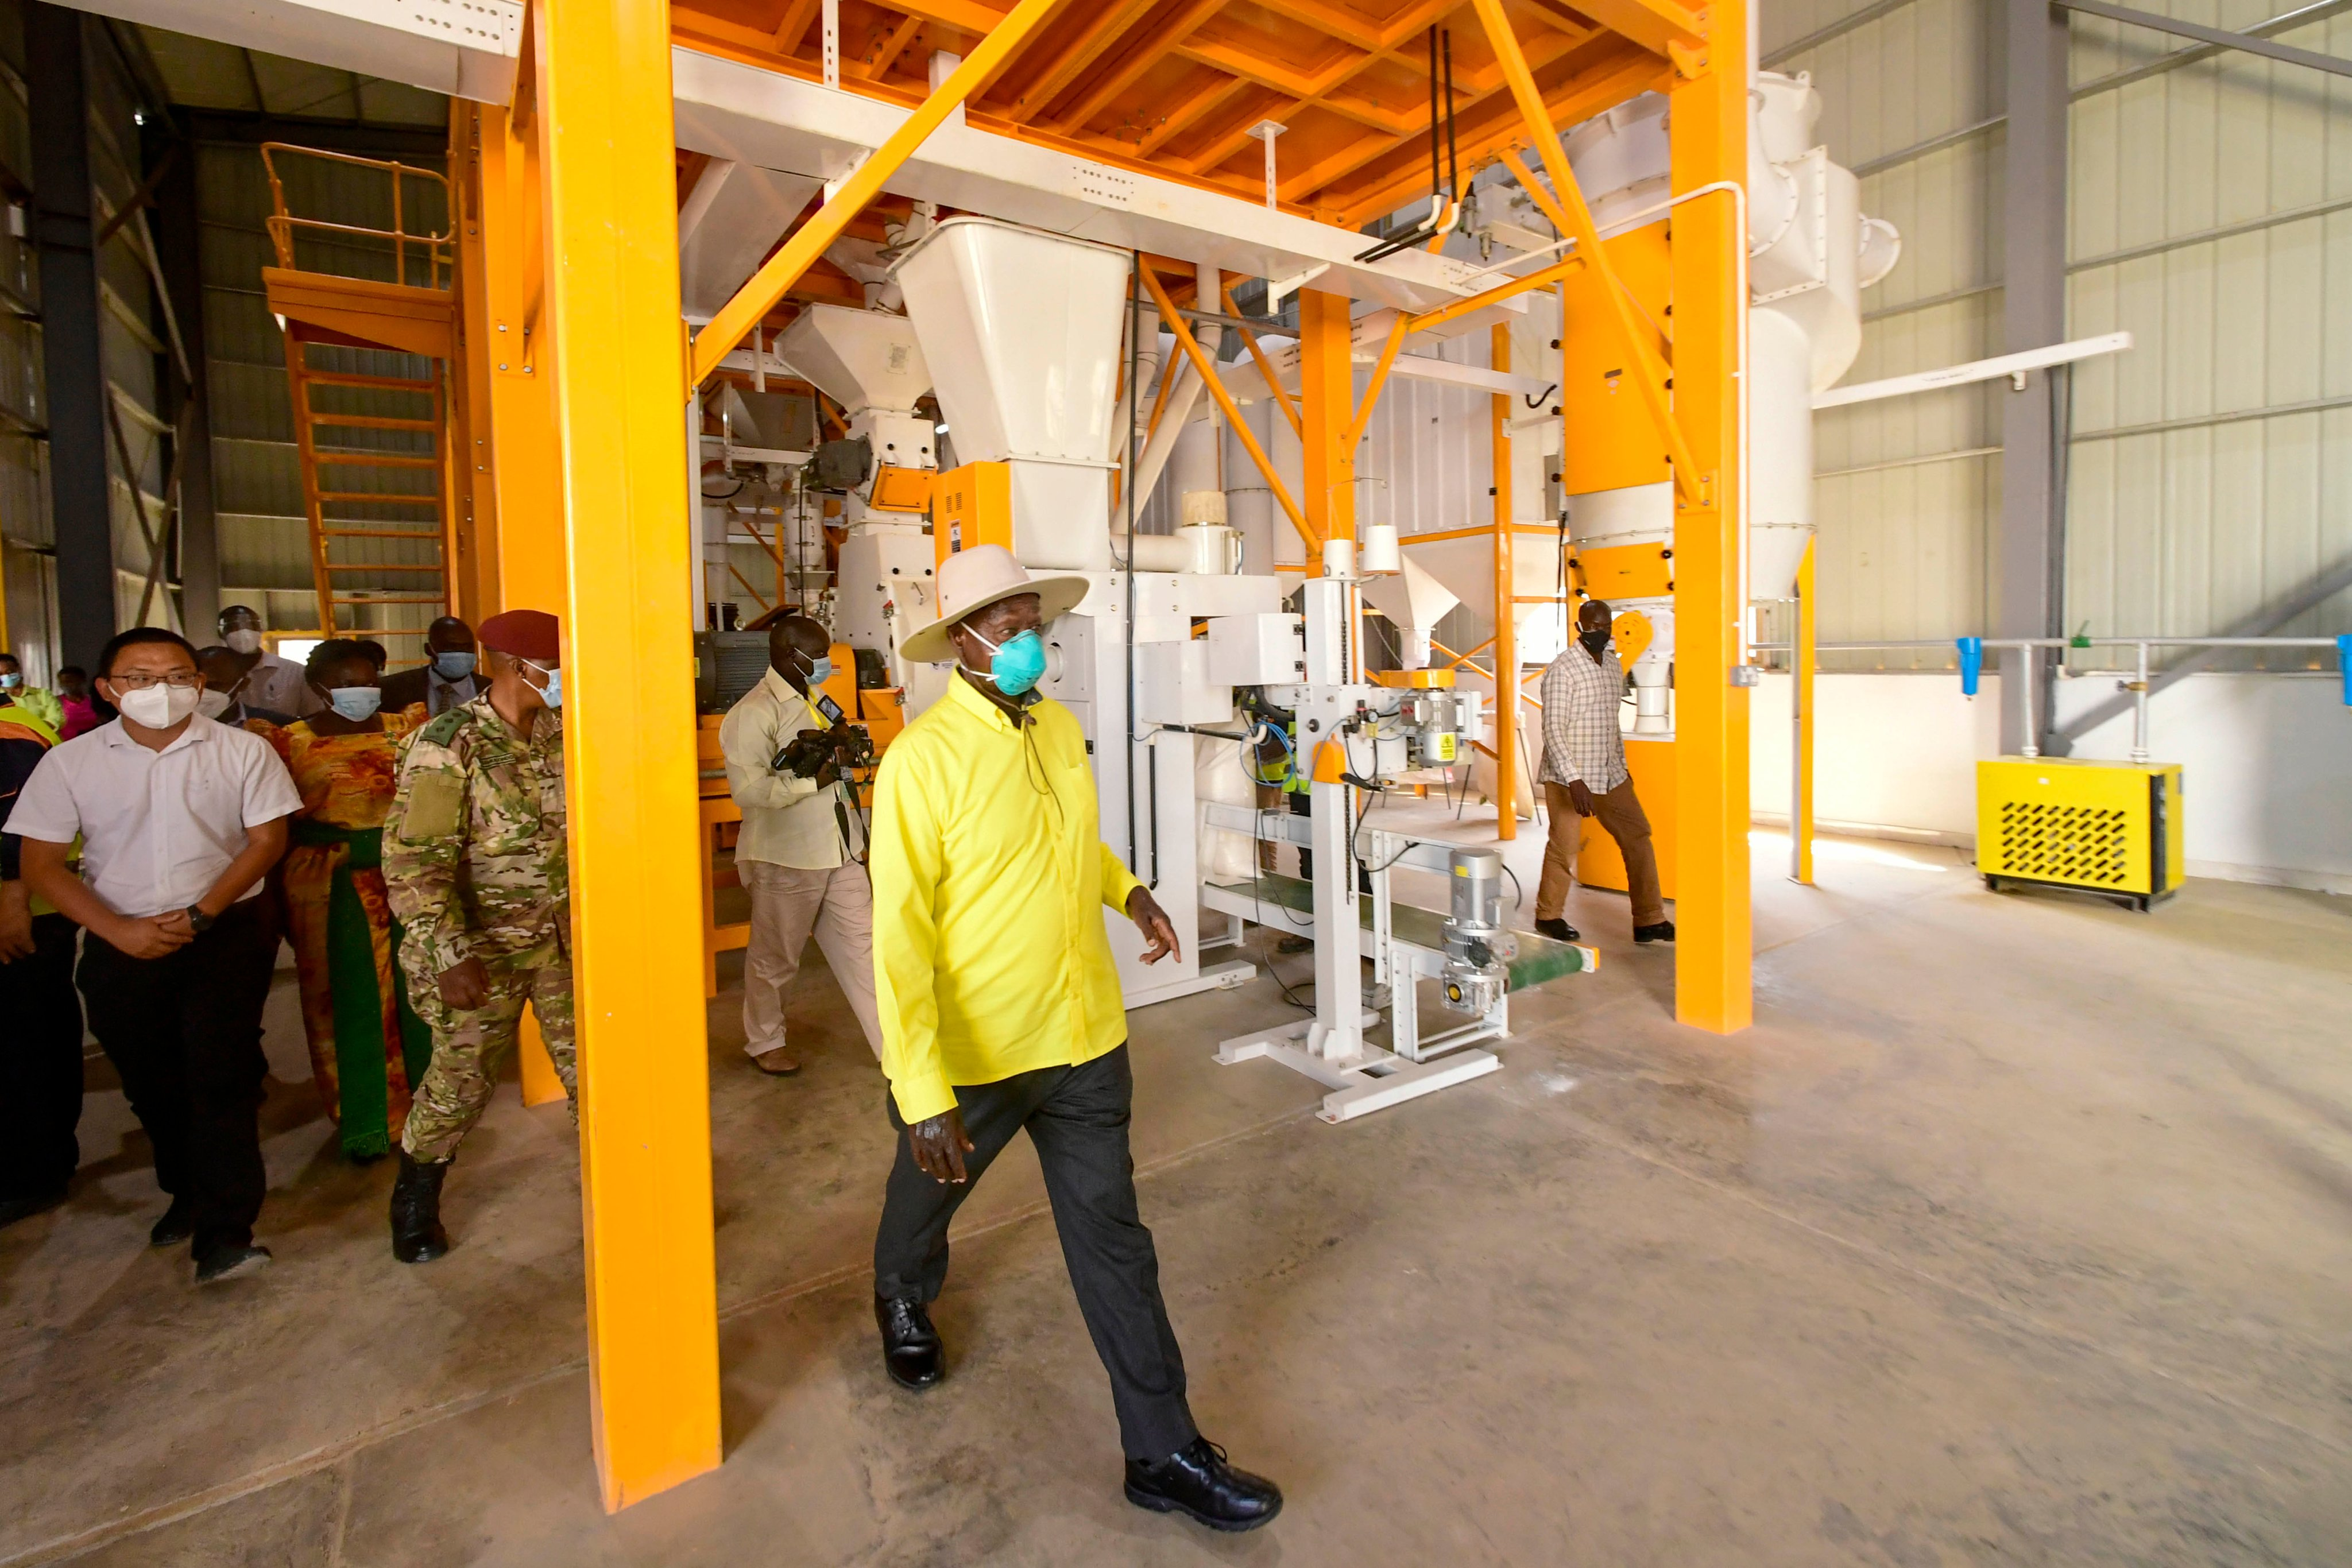 The President of Uganda unveiled the construction of the Uganda Busia Grain Processing Complex Project undertaken by Pingle Group